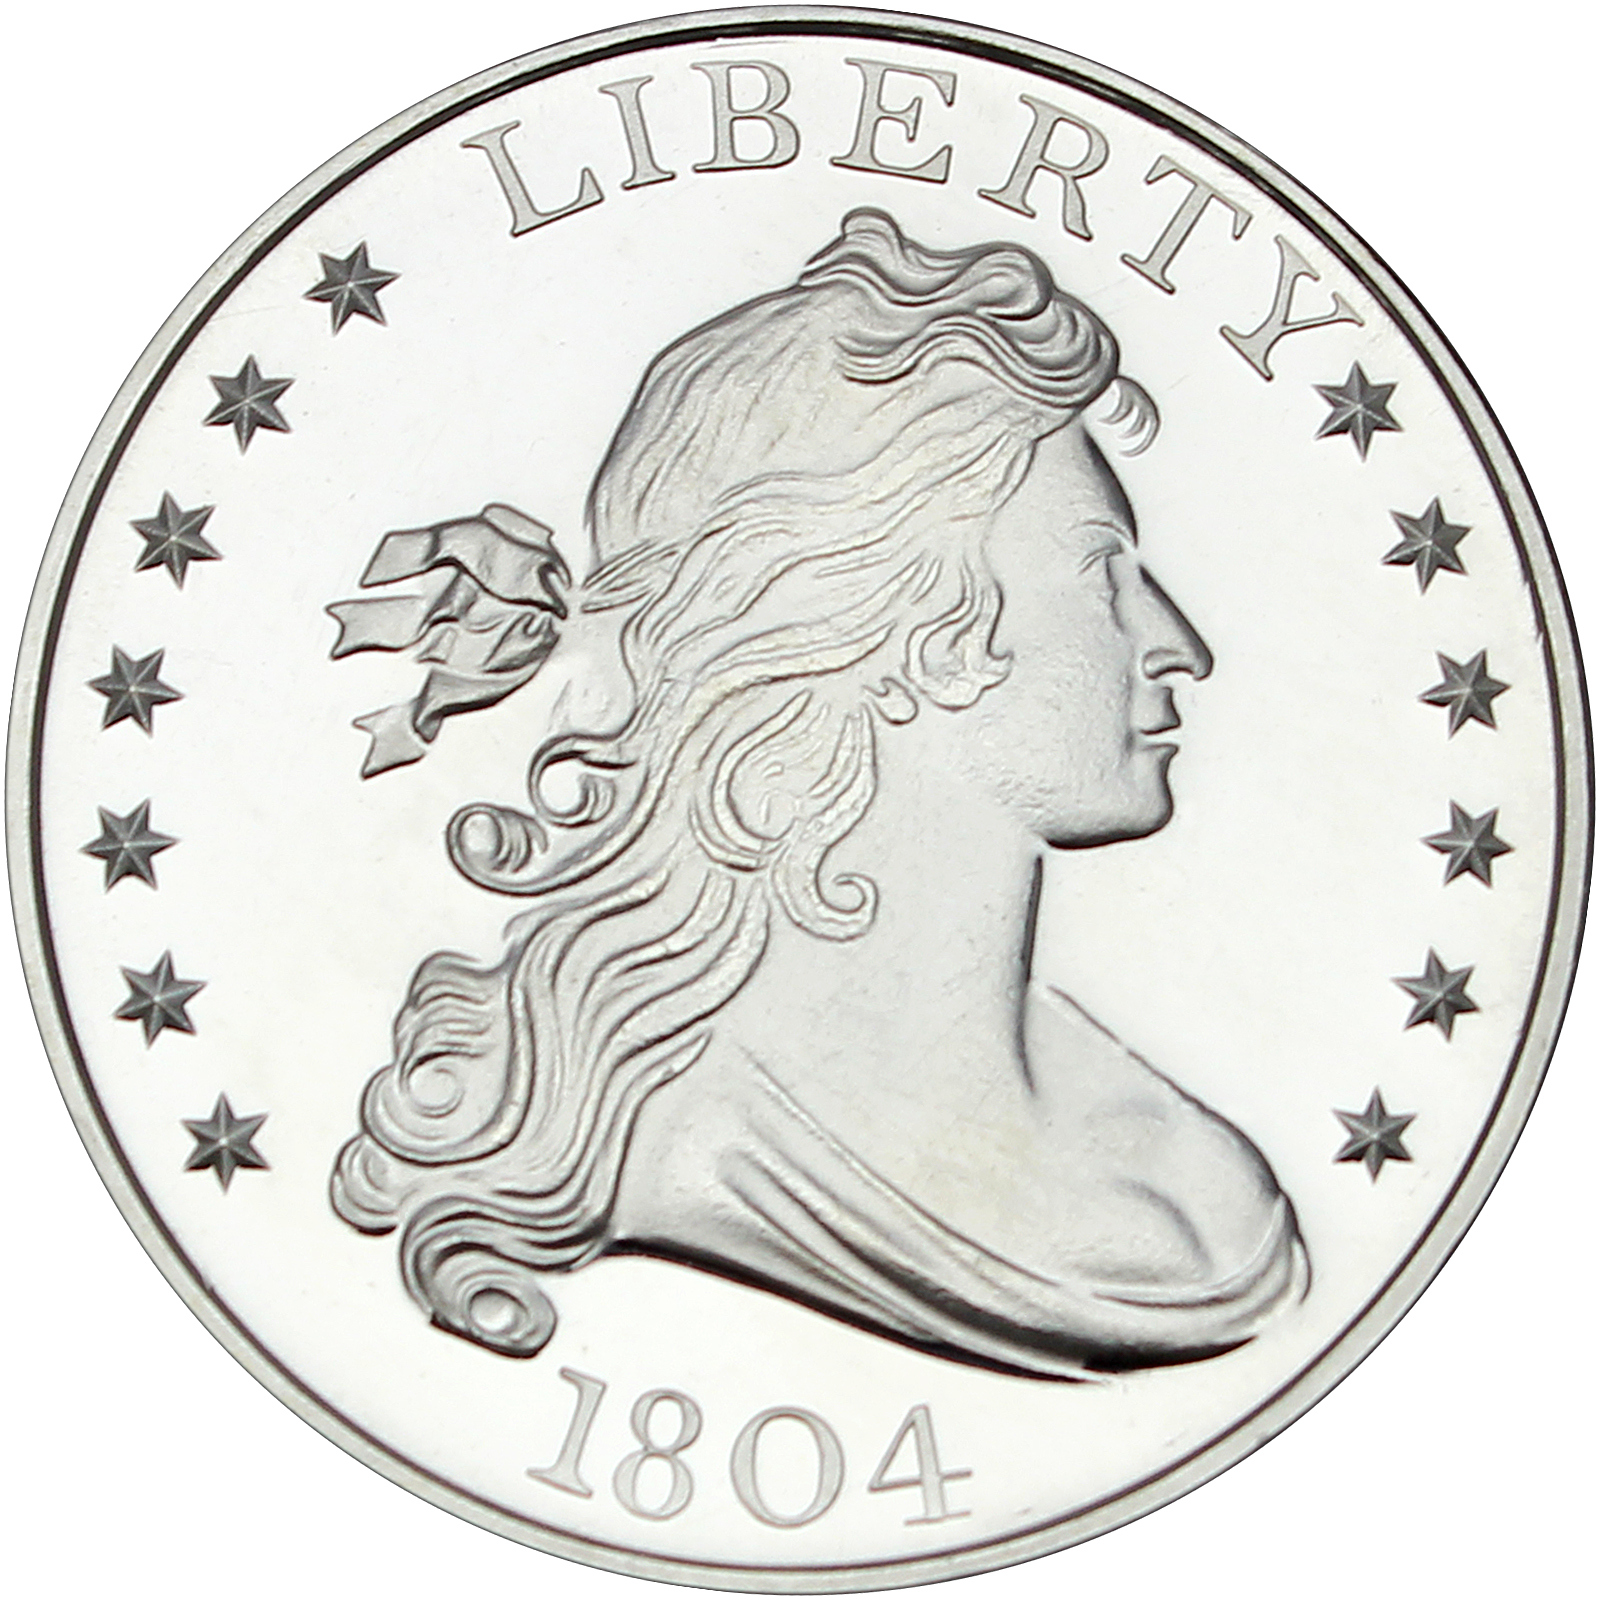 1804 1 1oz 999 Silver Medallion By Silvertowne 5pc